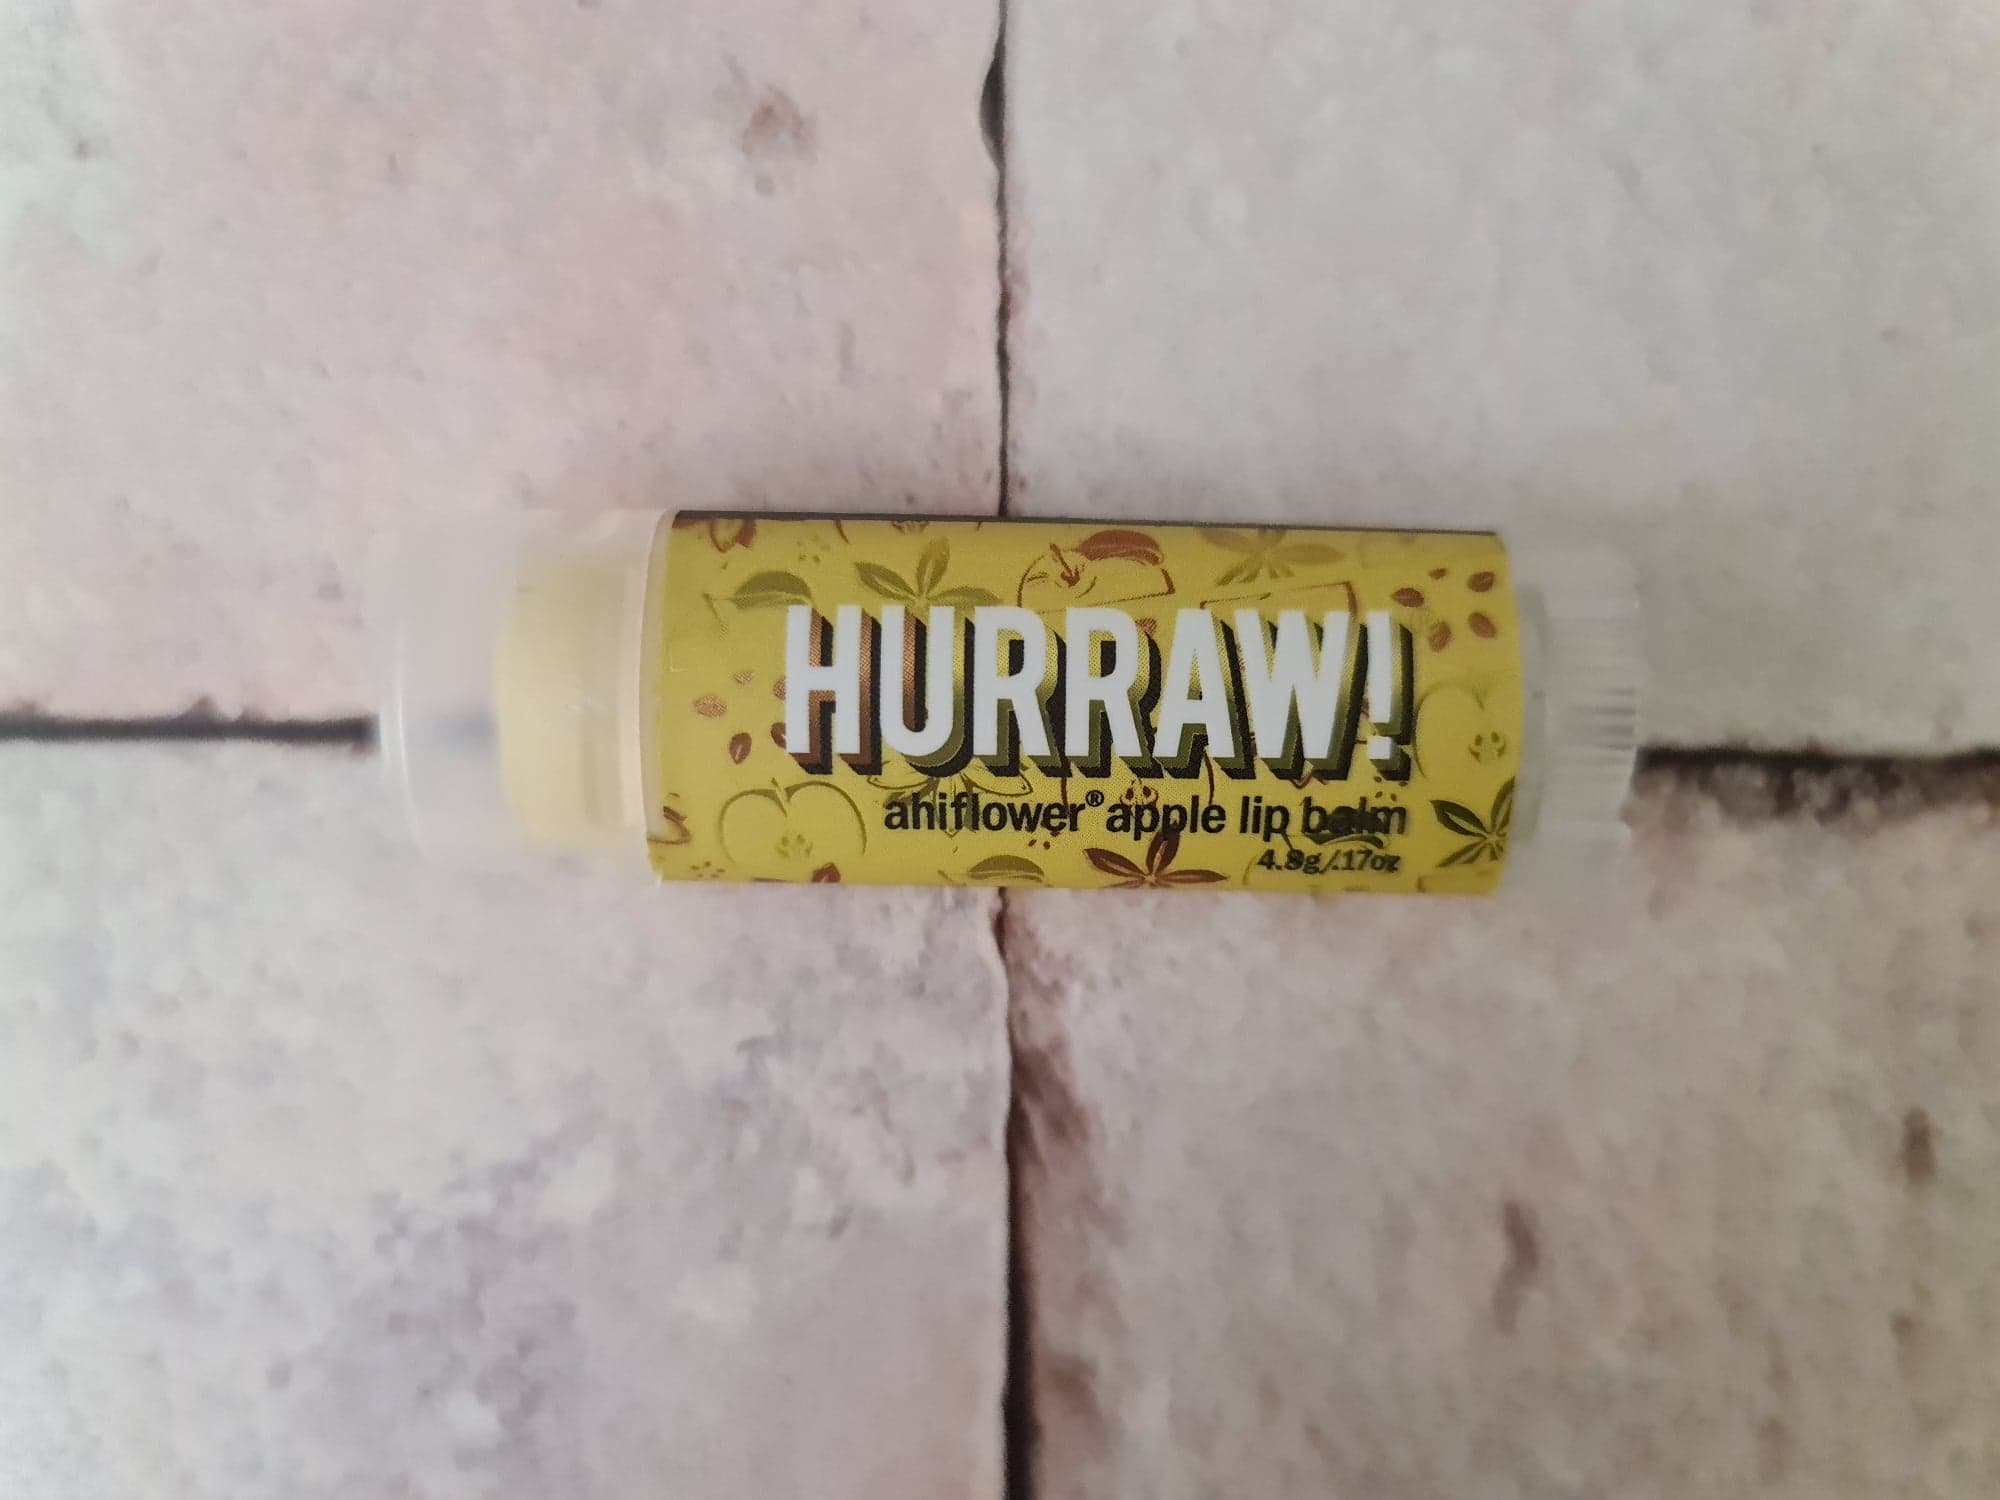 Hurraw Ahiflower Apple Lip Balm